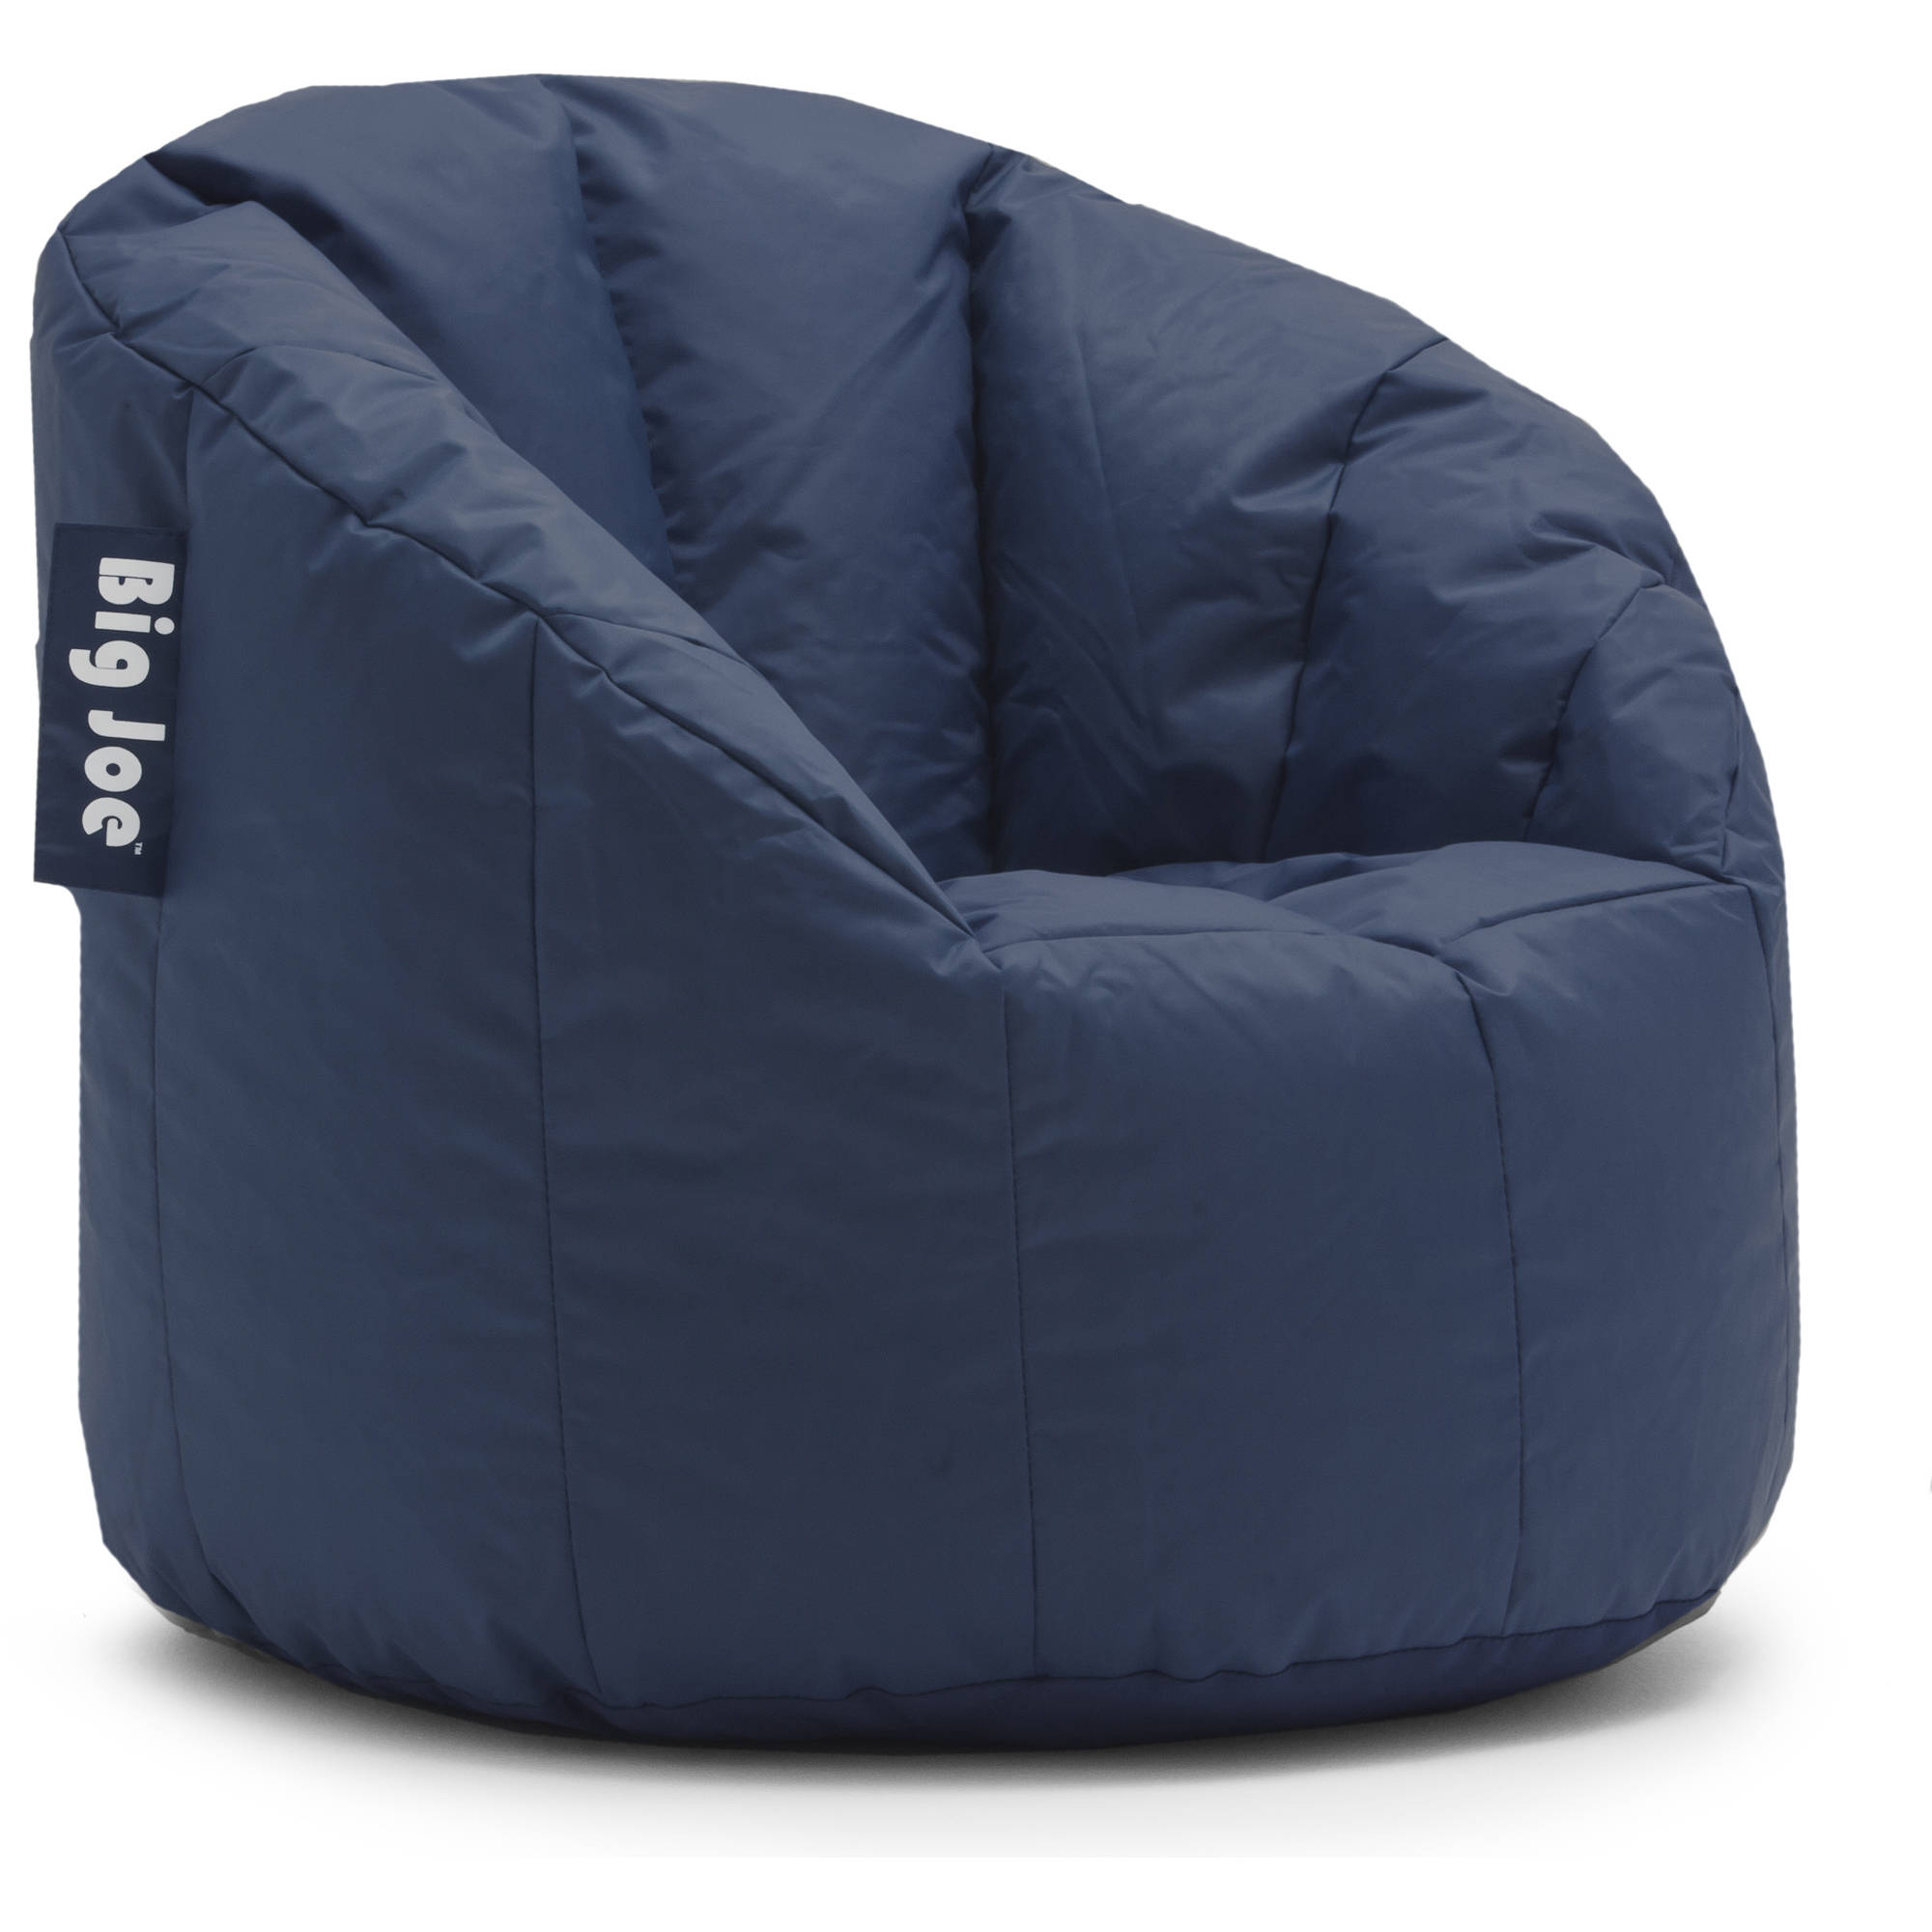 Big Joe Milano Bean Bag Chair Multiple Colors - 32  x 28  x 25  - Walmart.com  sc 1 st  Walmart & Big Joe Milano Bean Bag Chair Multiple Colors - 32